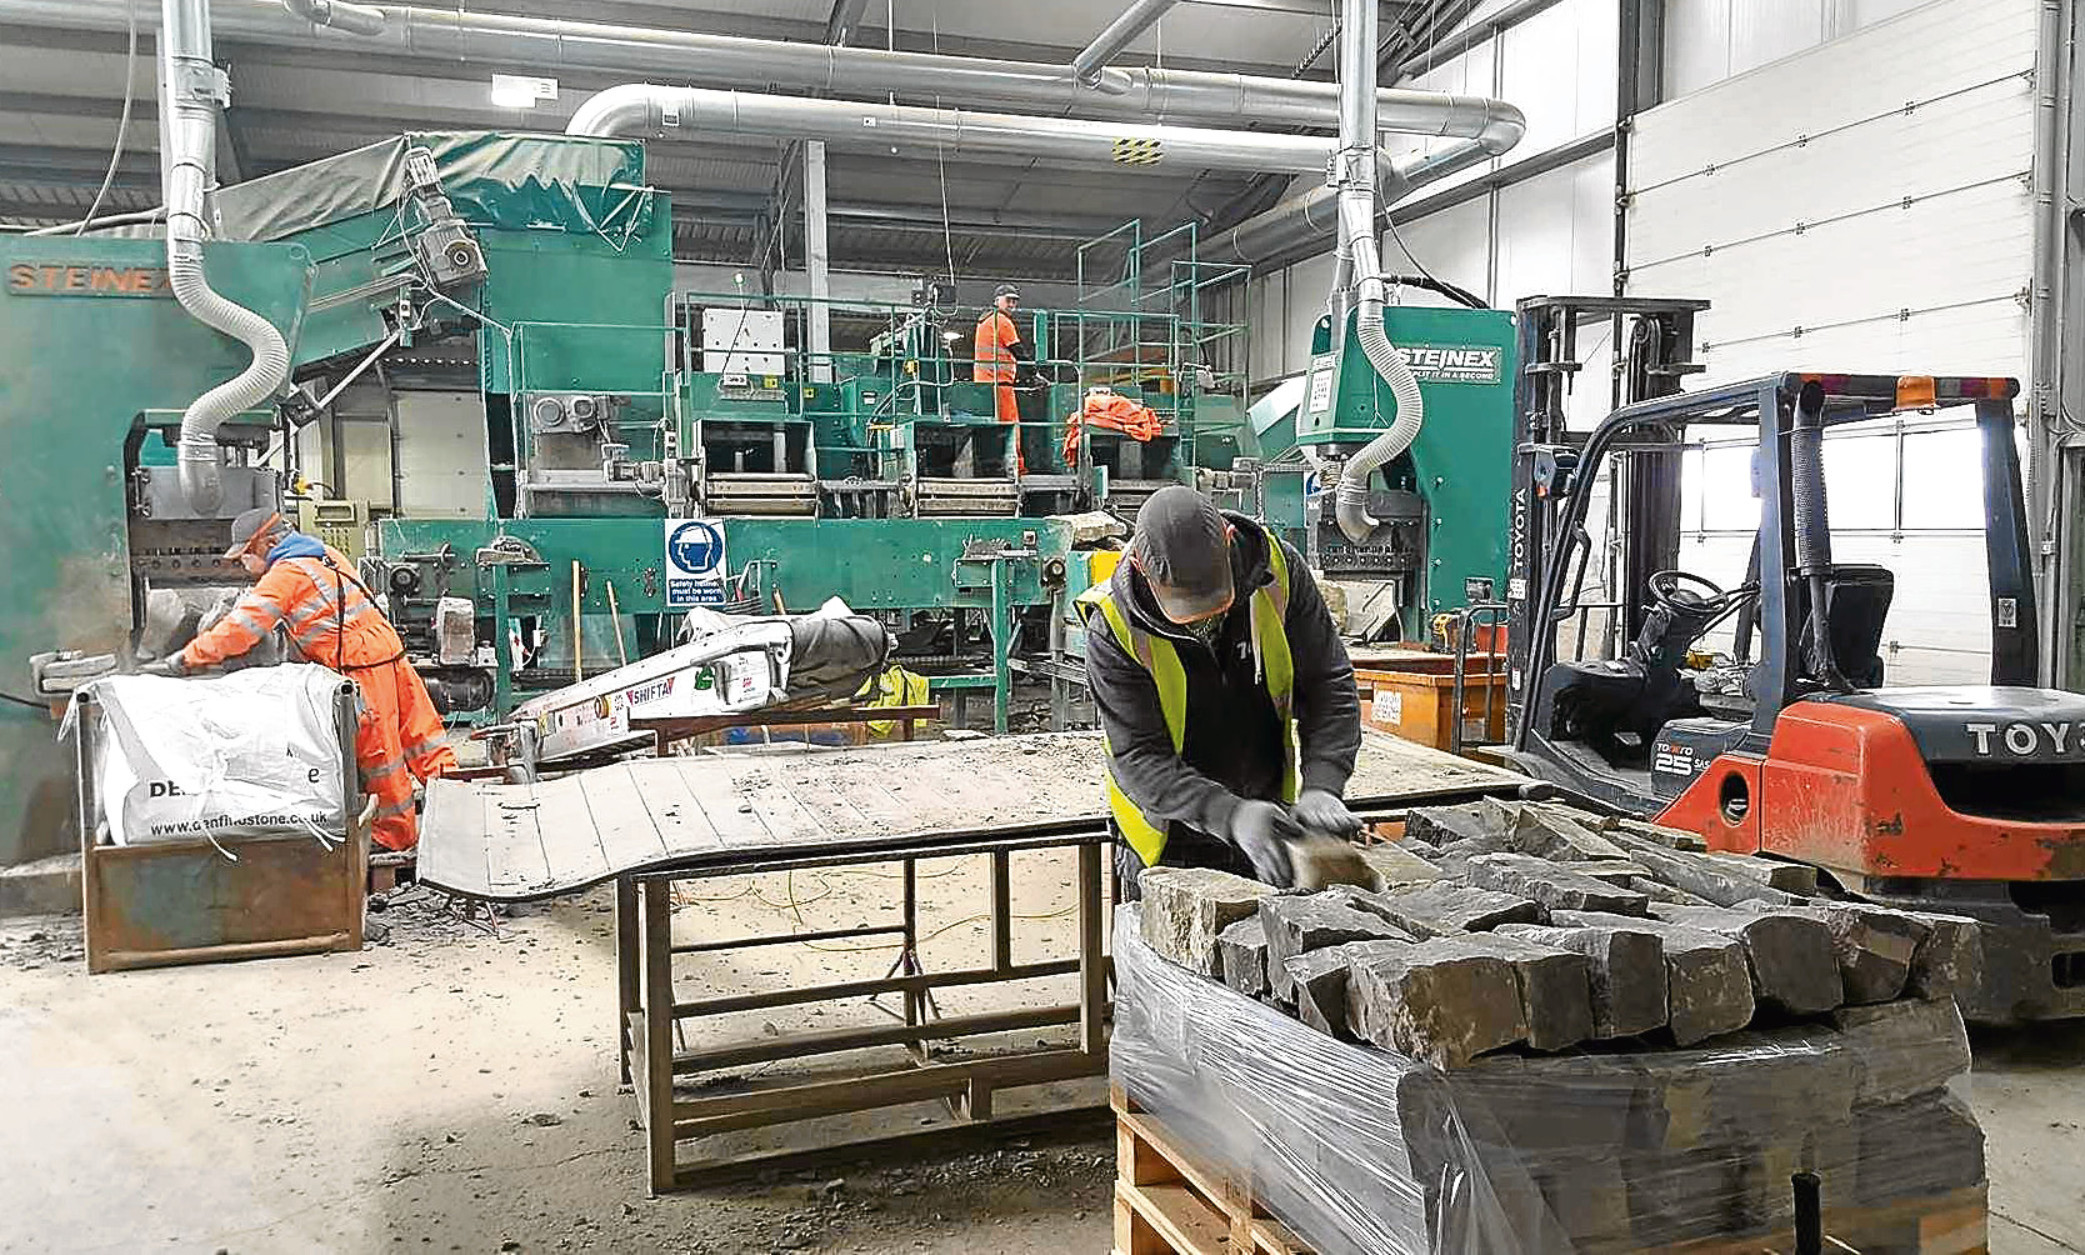 Denfind stone's processing facility at Monikie